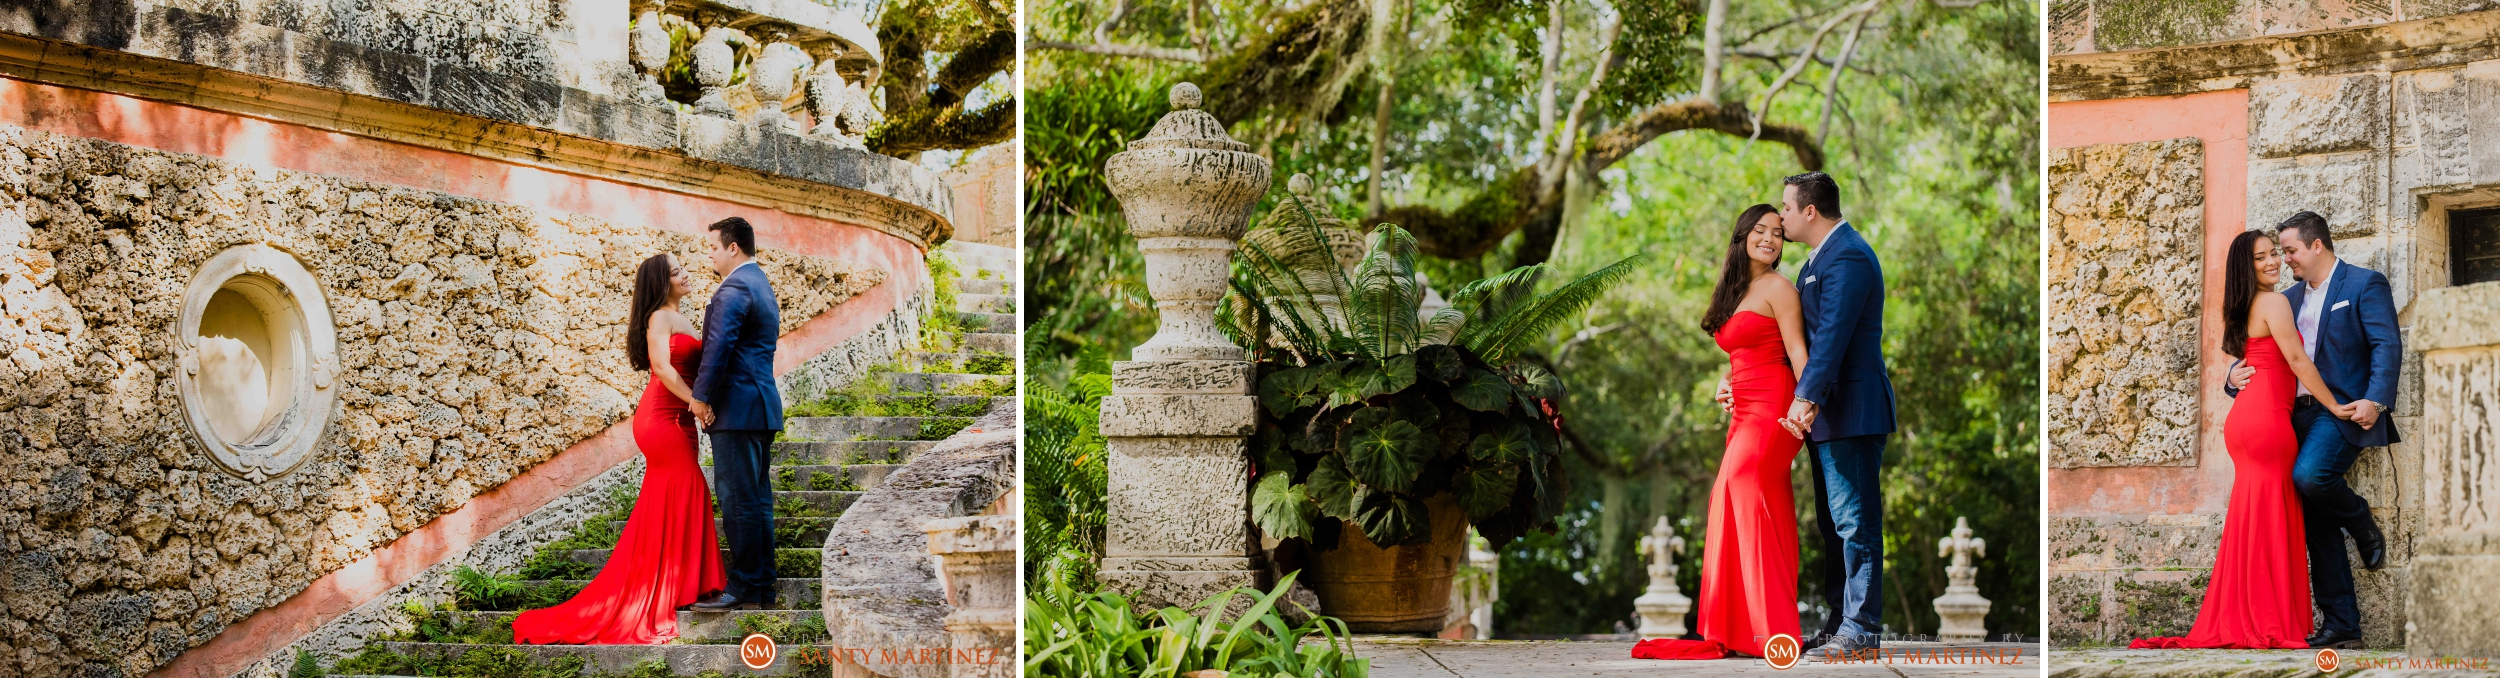 Vizcaya Engagement Session - Miami - Photography by Santy Martinez 3.jpg